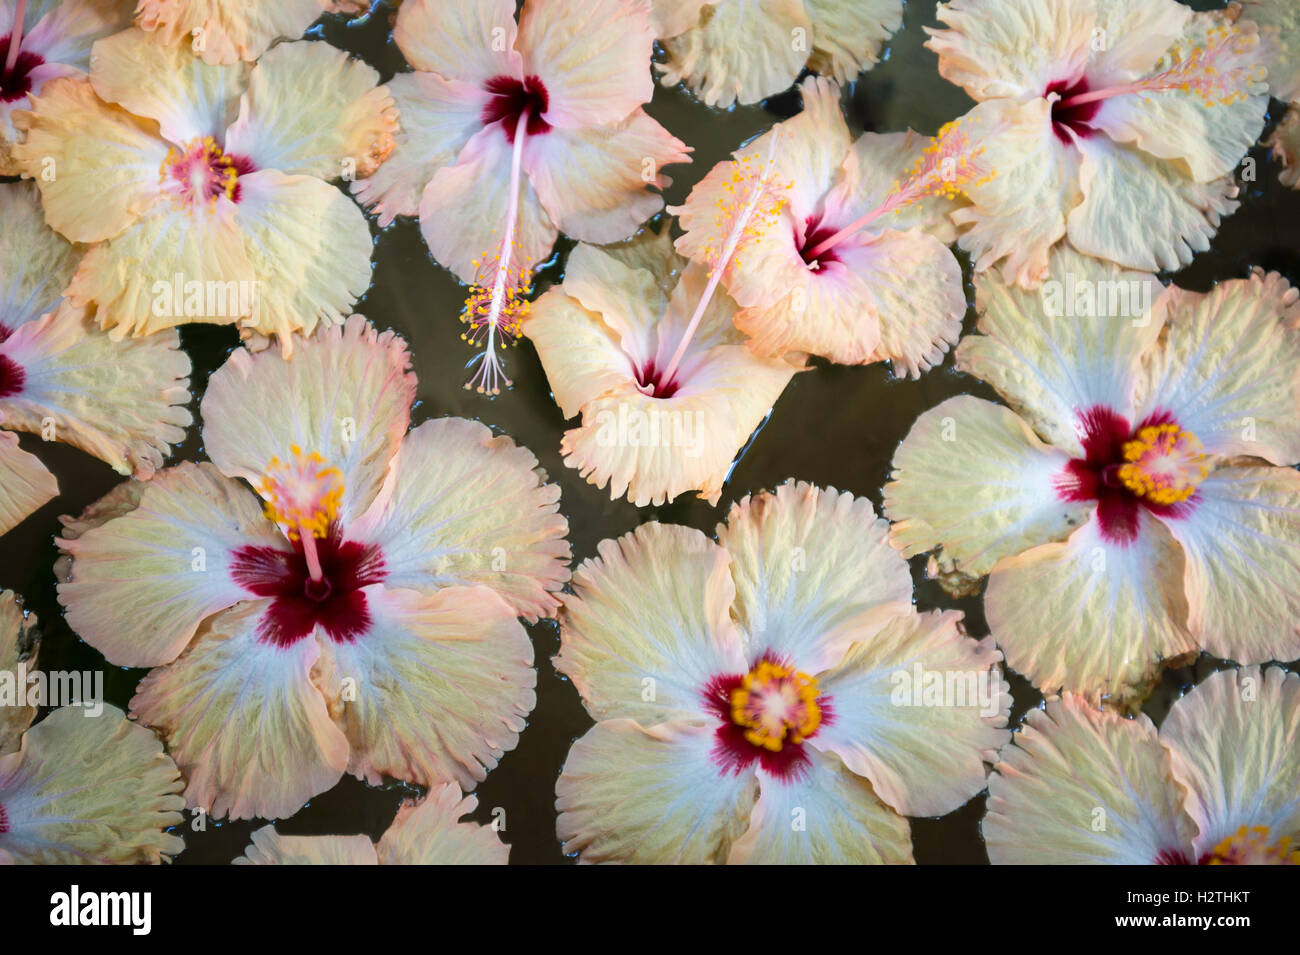 Colorful Collection Of Fresh Hibiscus Blossoms Floats In A Stone